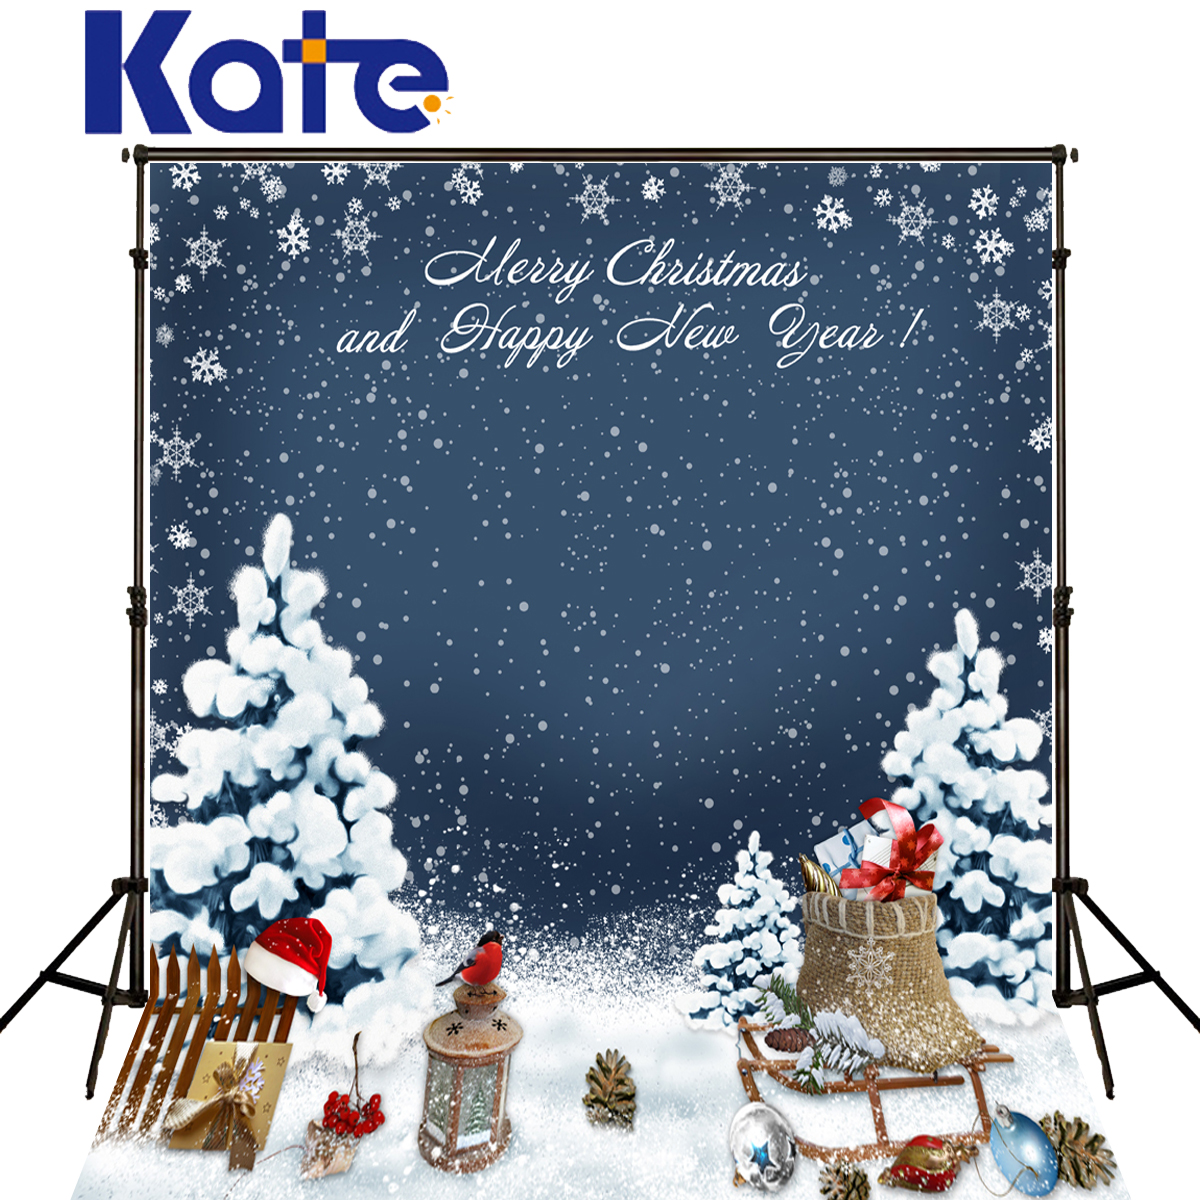 Kate Merry Christmas Backdrop Photography Red Hat Snow Falling Sled Winter Blue Photographic Background For Photo Studio J02151 kate christmas village background cartoon photography backdrop moon backgrounds blue winter background for children shoot